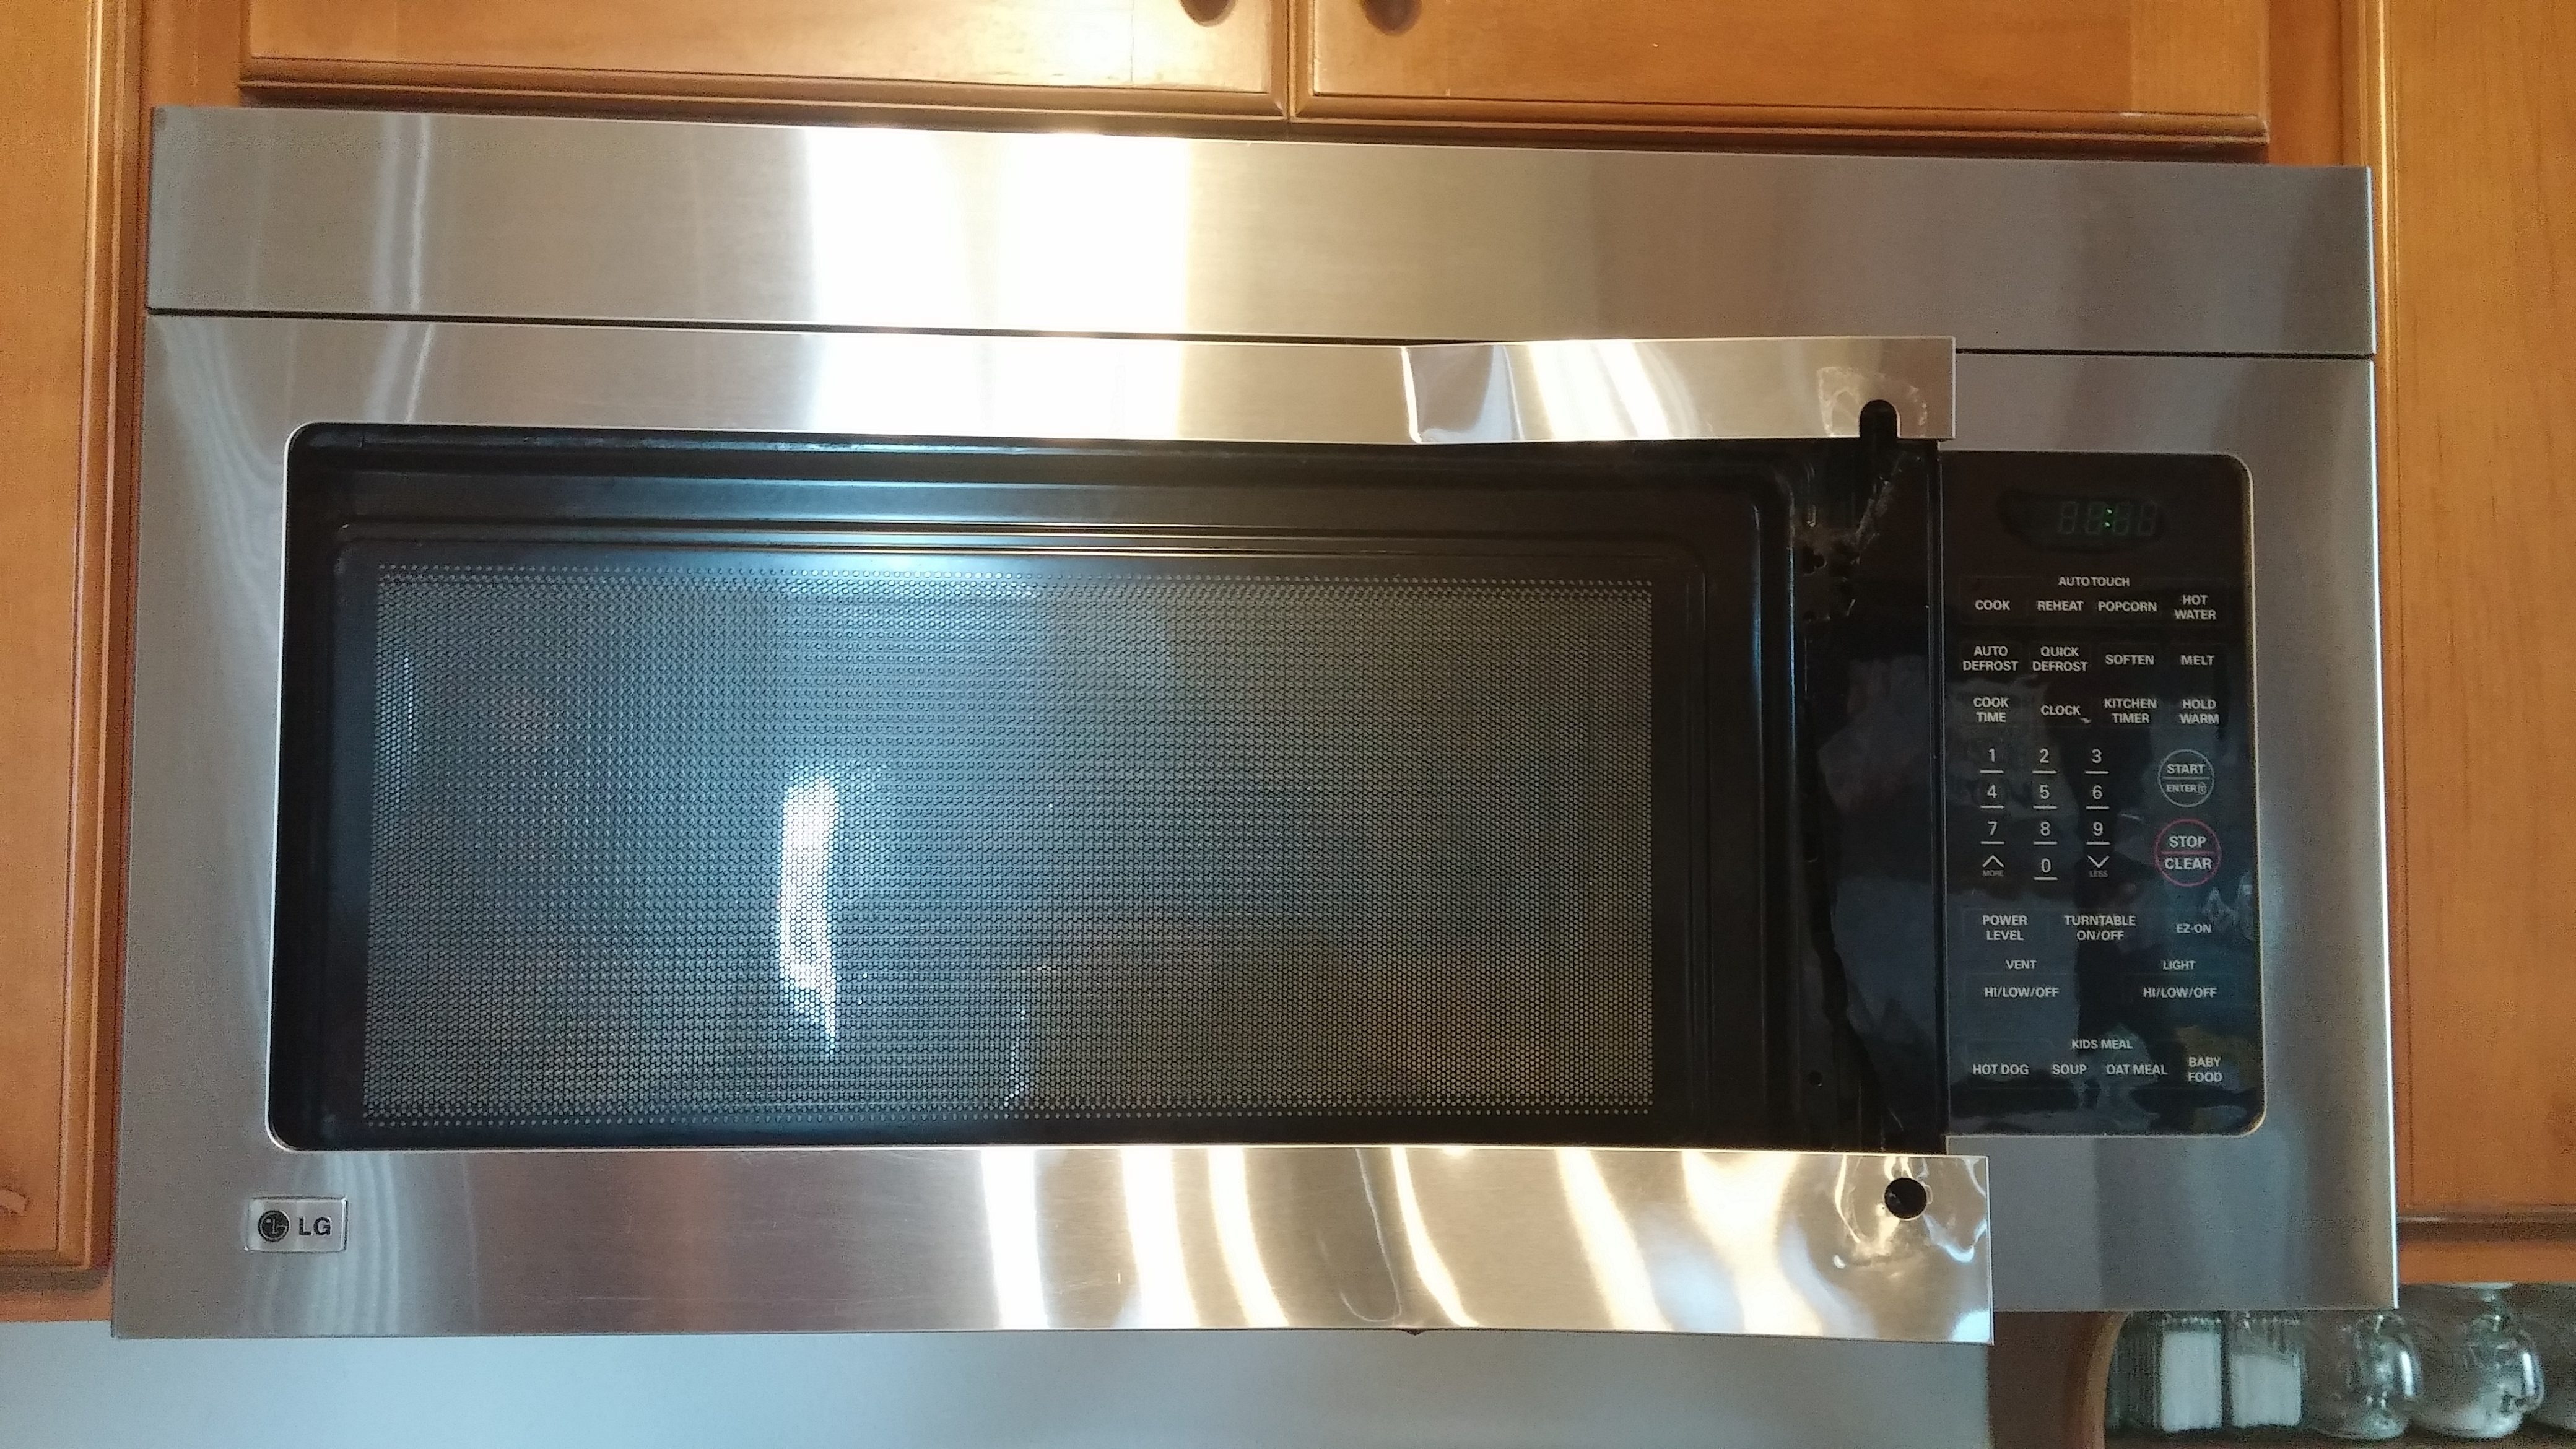 Kitchen Microwave Top 182 Complaints And Reviews About Lg Microwaves